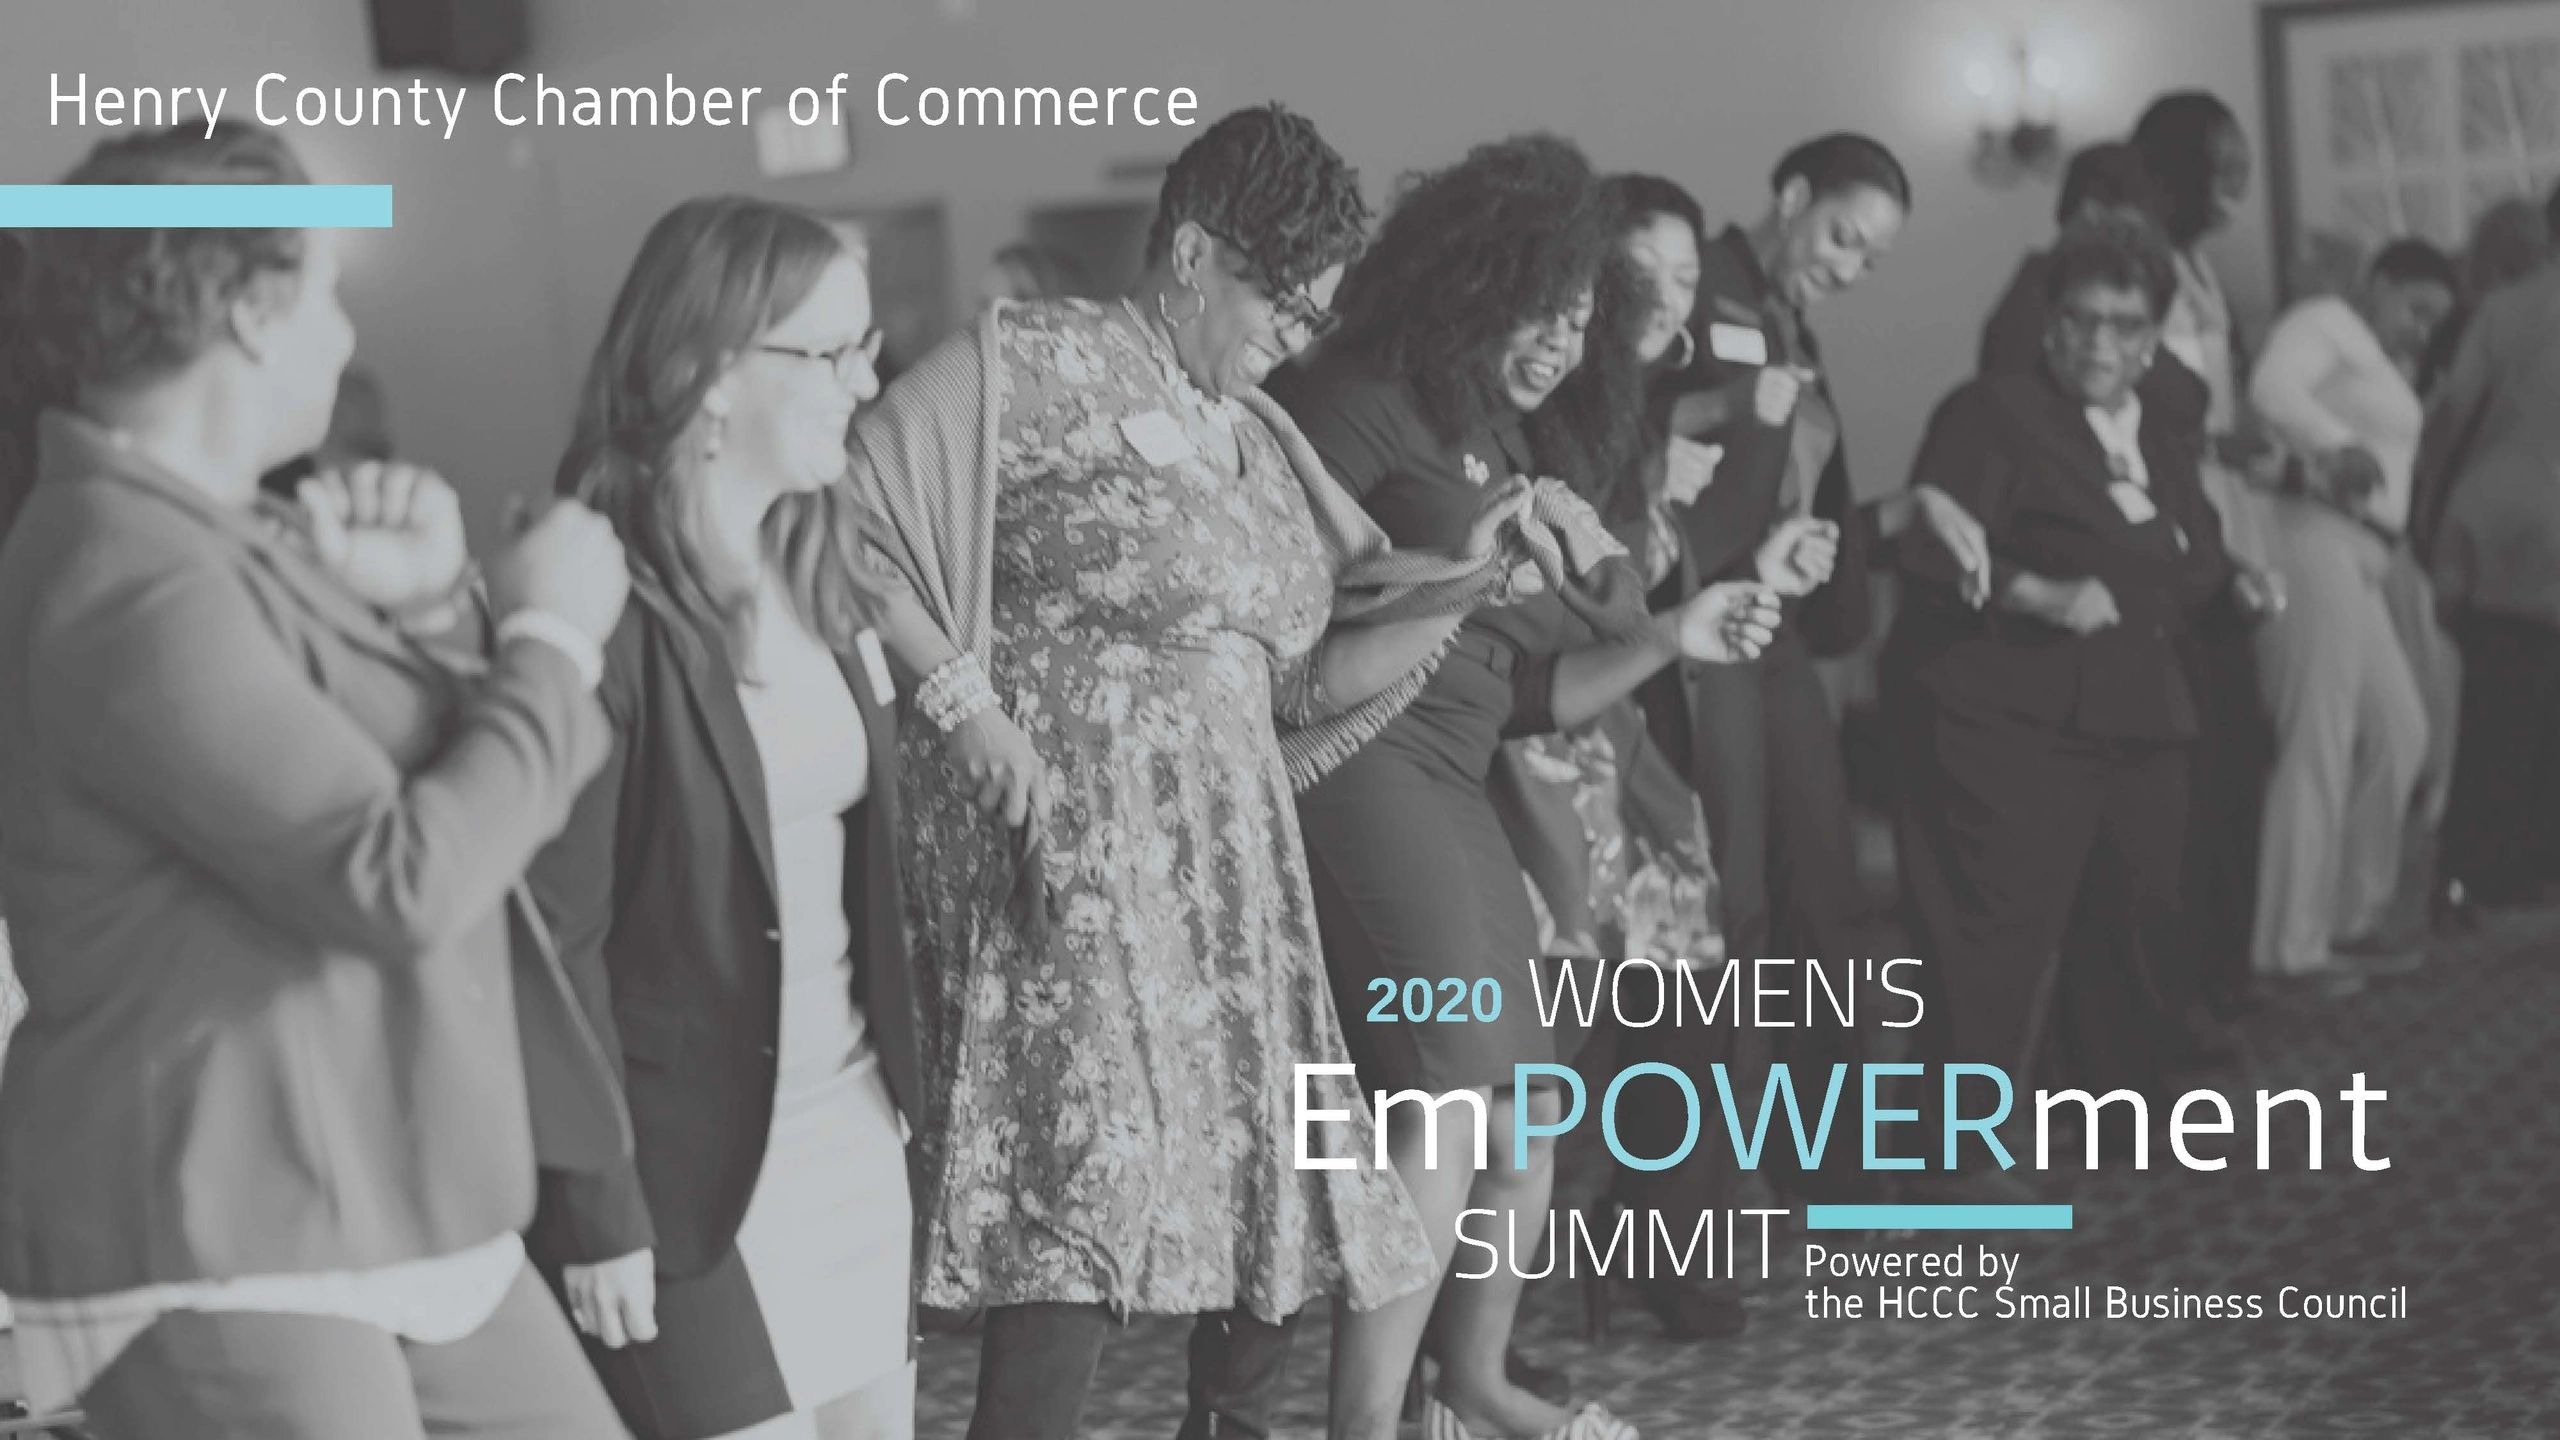 Women energized for the 2020 Women's EmPOWERment Summit.